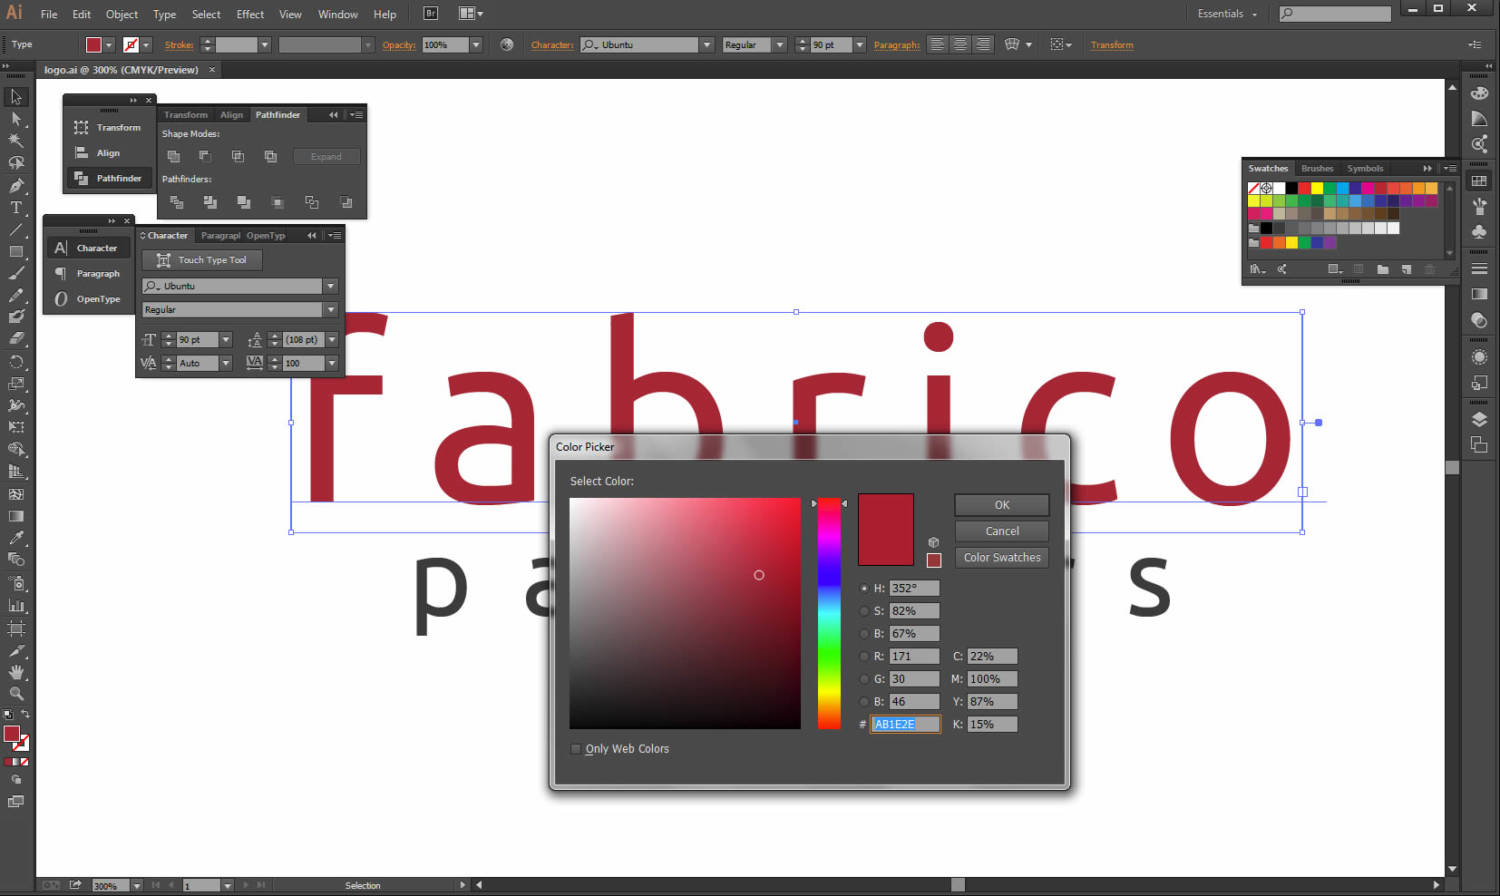 fabrico logo adobe illustrator design